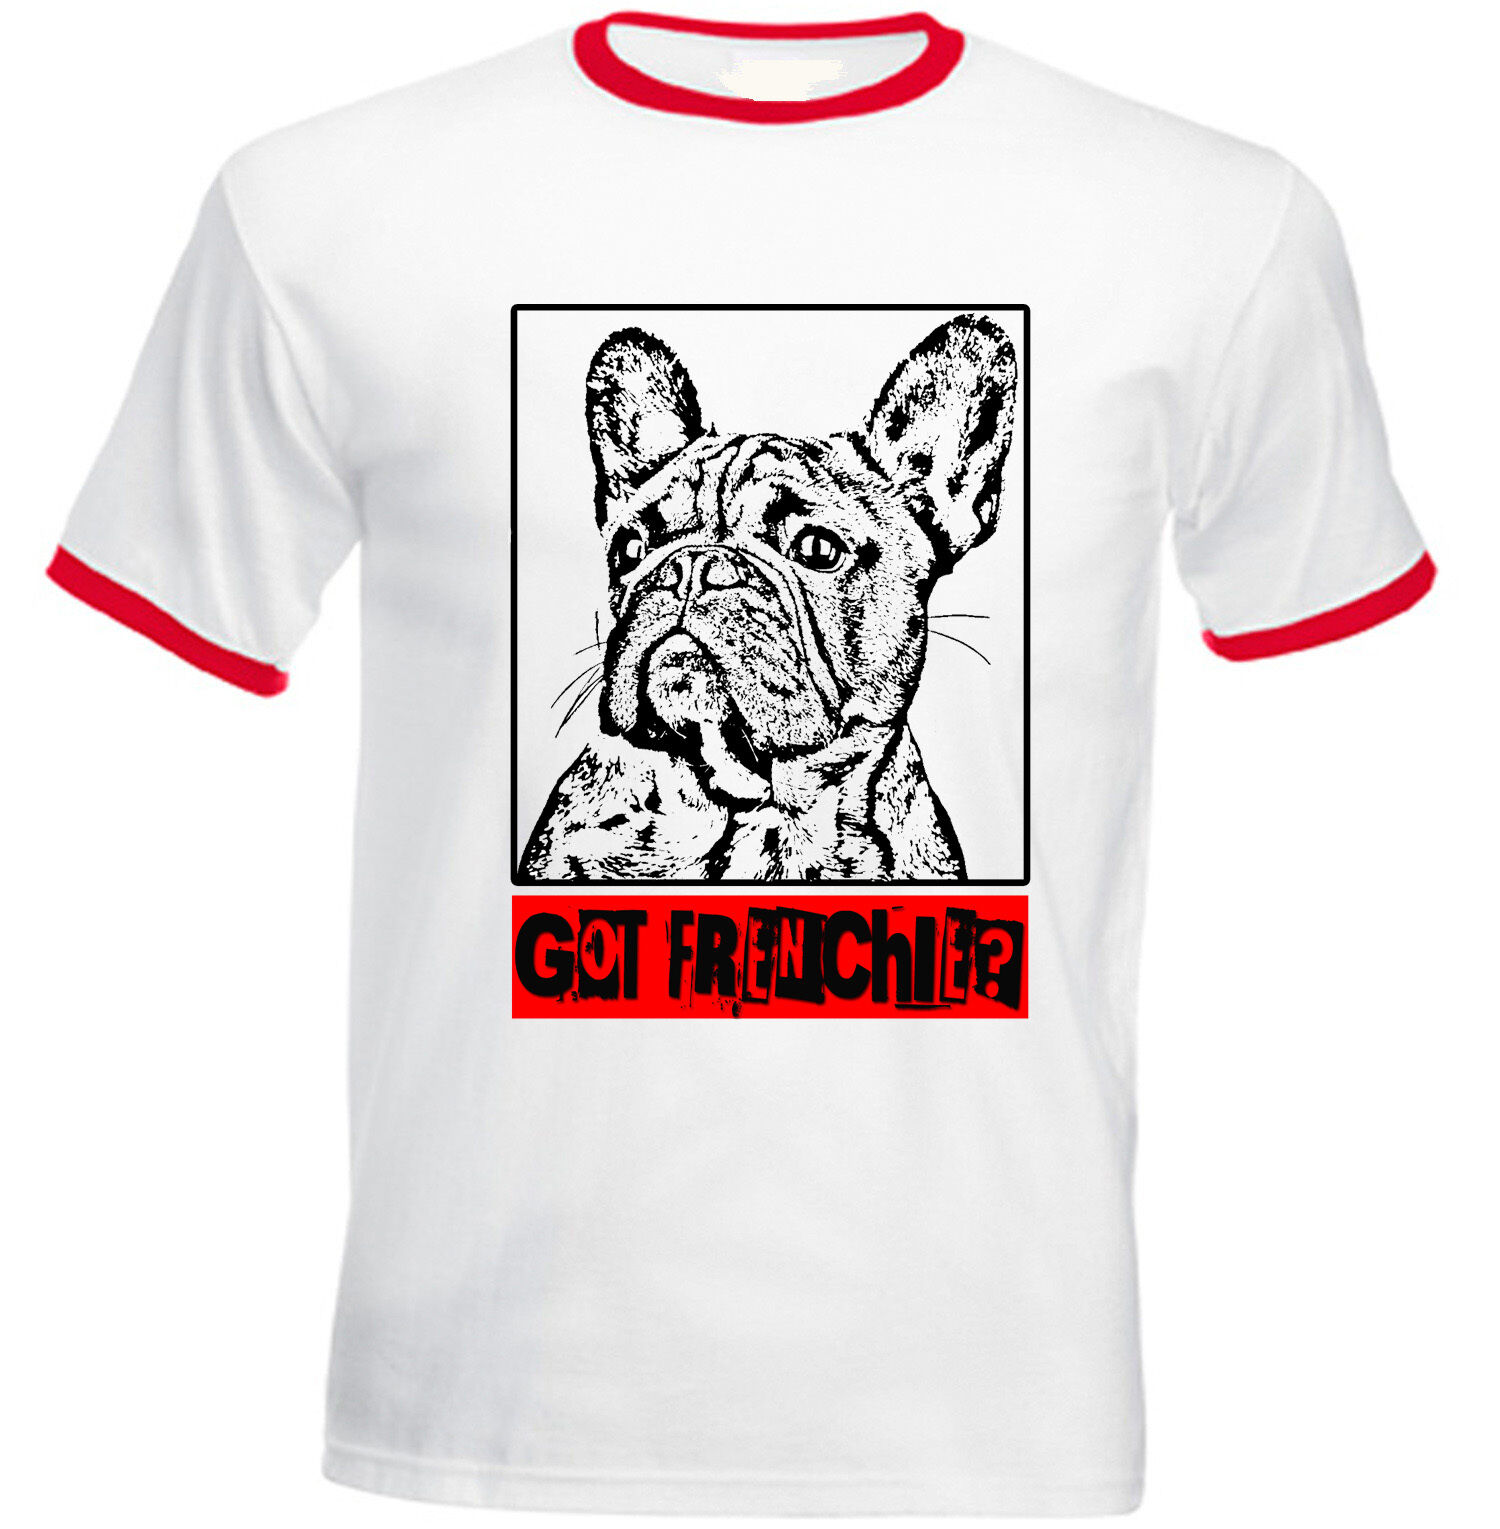 French bulldog a Frenchie-New Rouge Coton Ringer Coton Rouge T-Shirt 429830